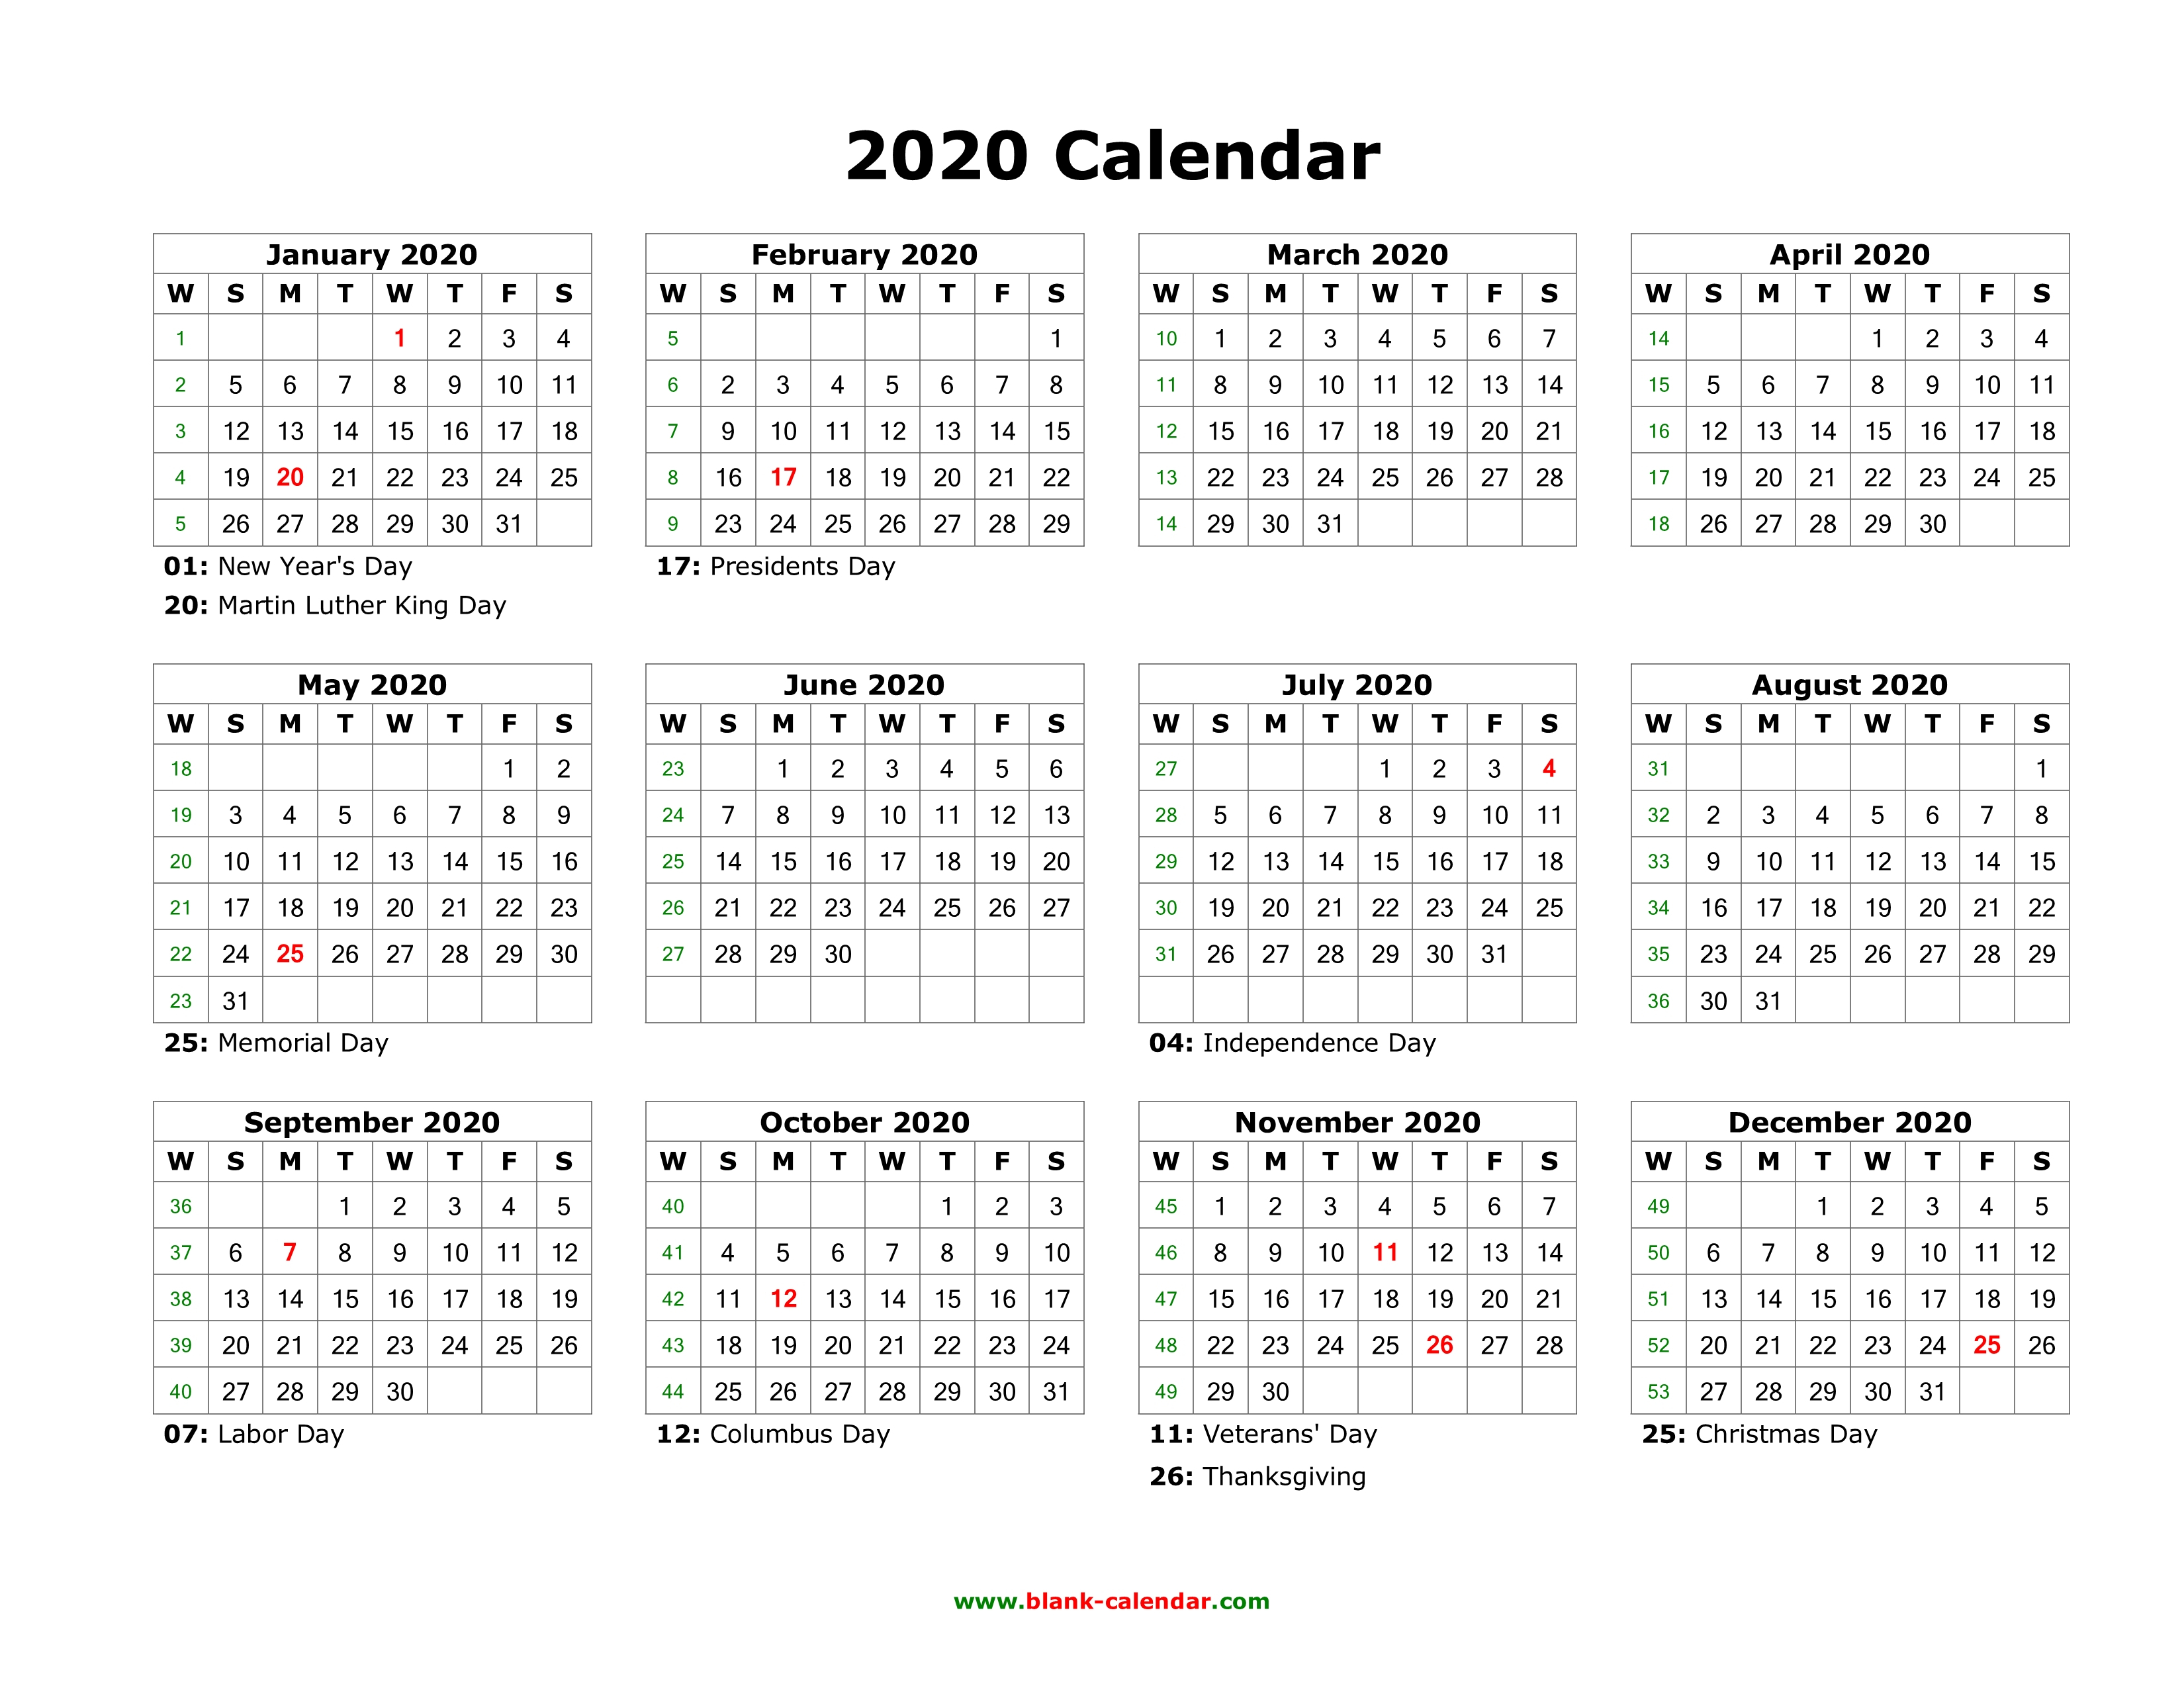 Download Blank Calendar 2020 With Us Holidays (12 Months On One Page